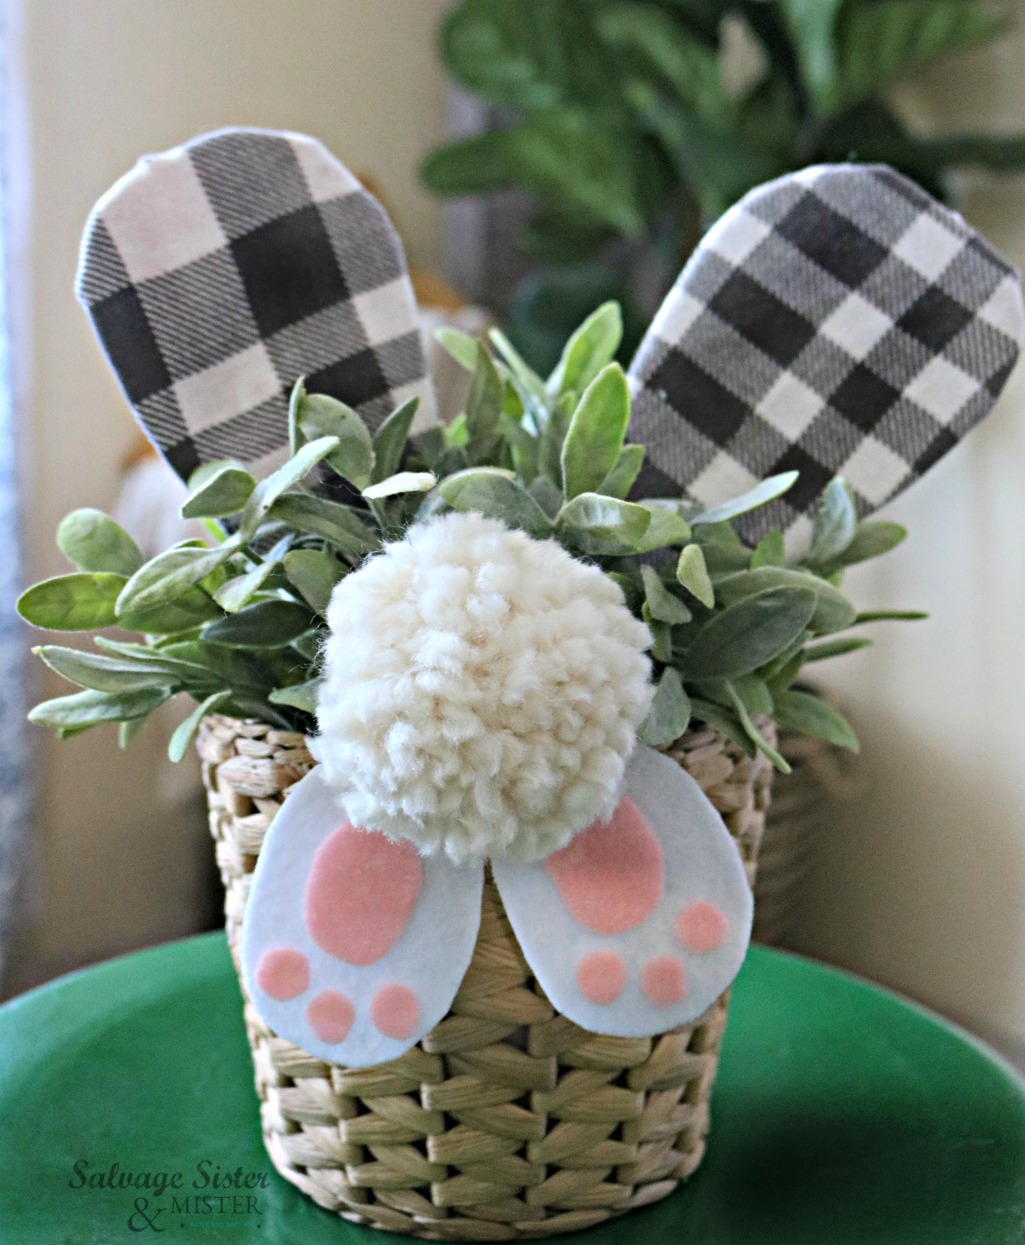 DIY bunny butt craft decoration - farmhouse style with buffalo check ears.  Removable so you can add it to anything you like (basket, tin, etc).  Fun for all ages to make.  Get the full tutorial on salvagesisterandmister.com